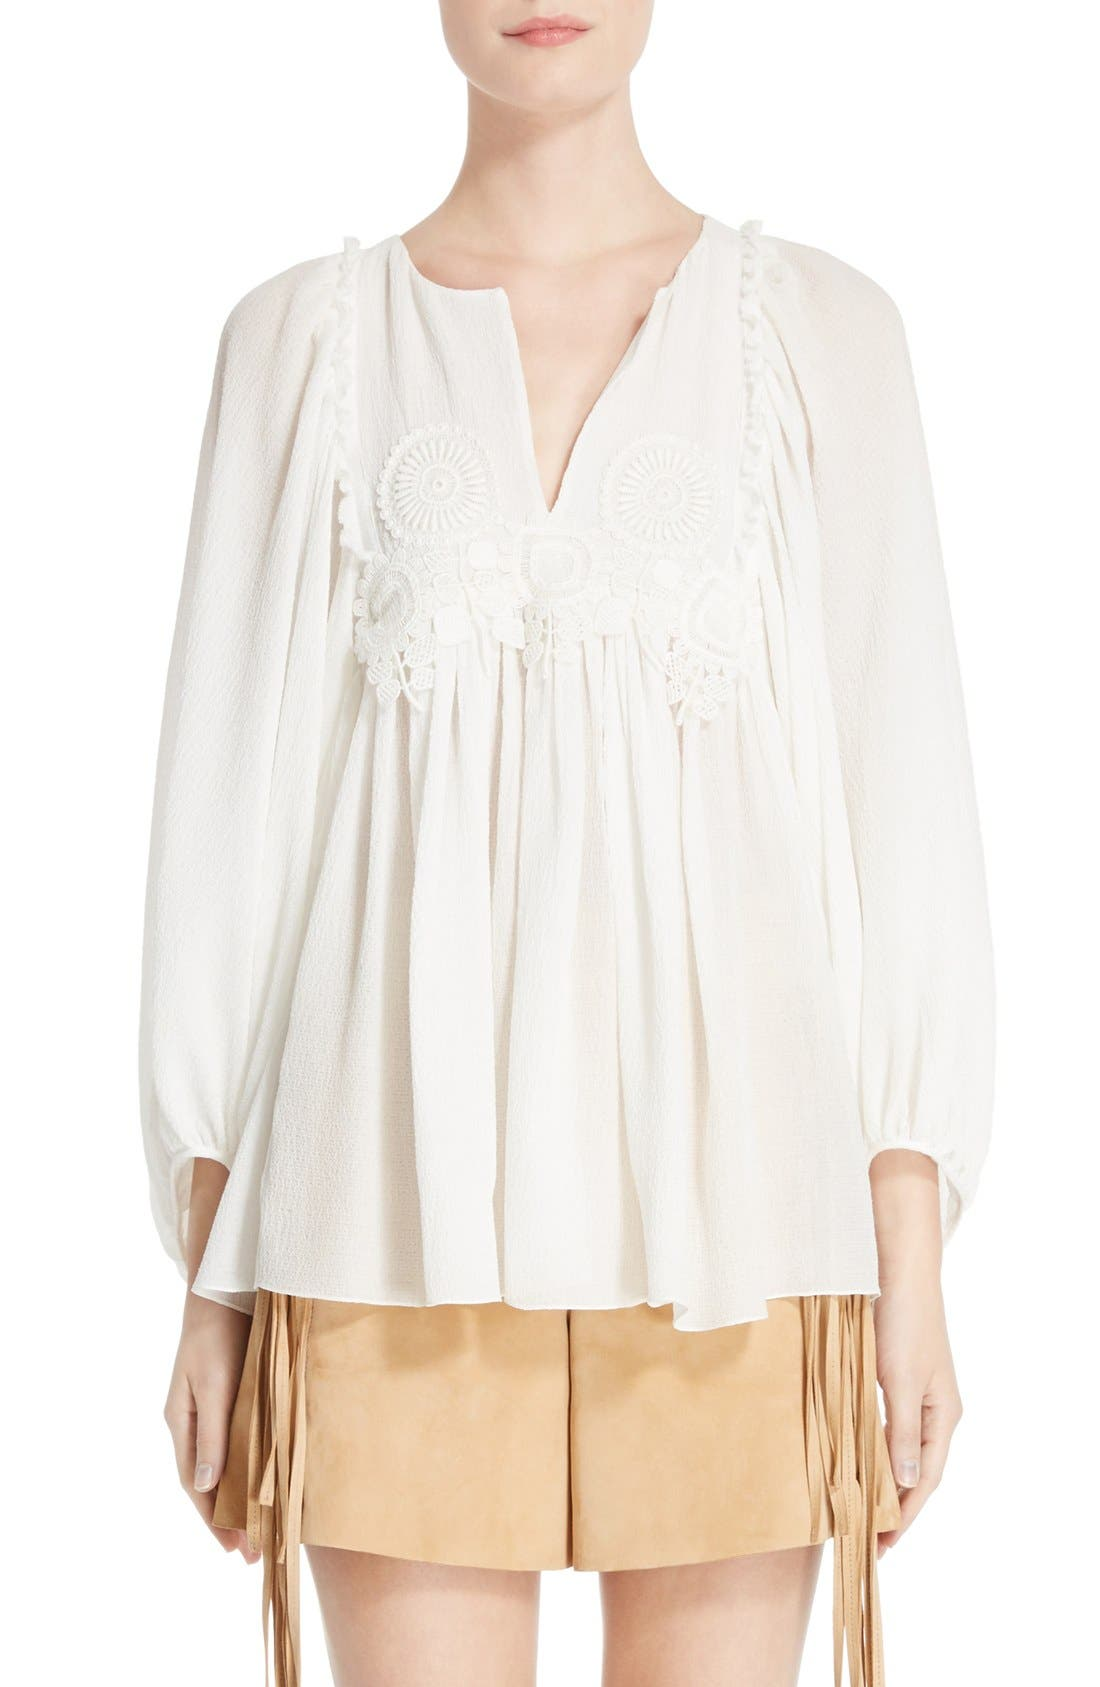 CHLOÉ Lace Trim Crepe Blouse